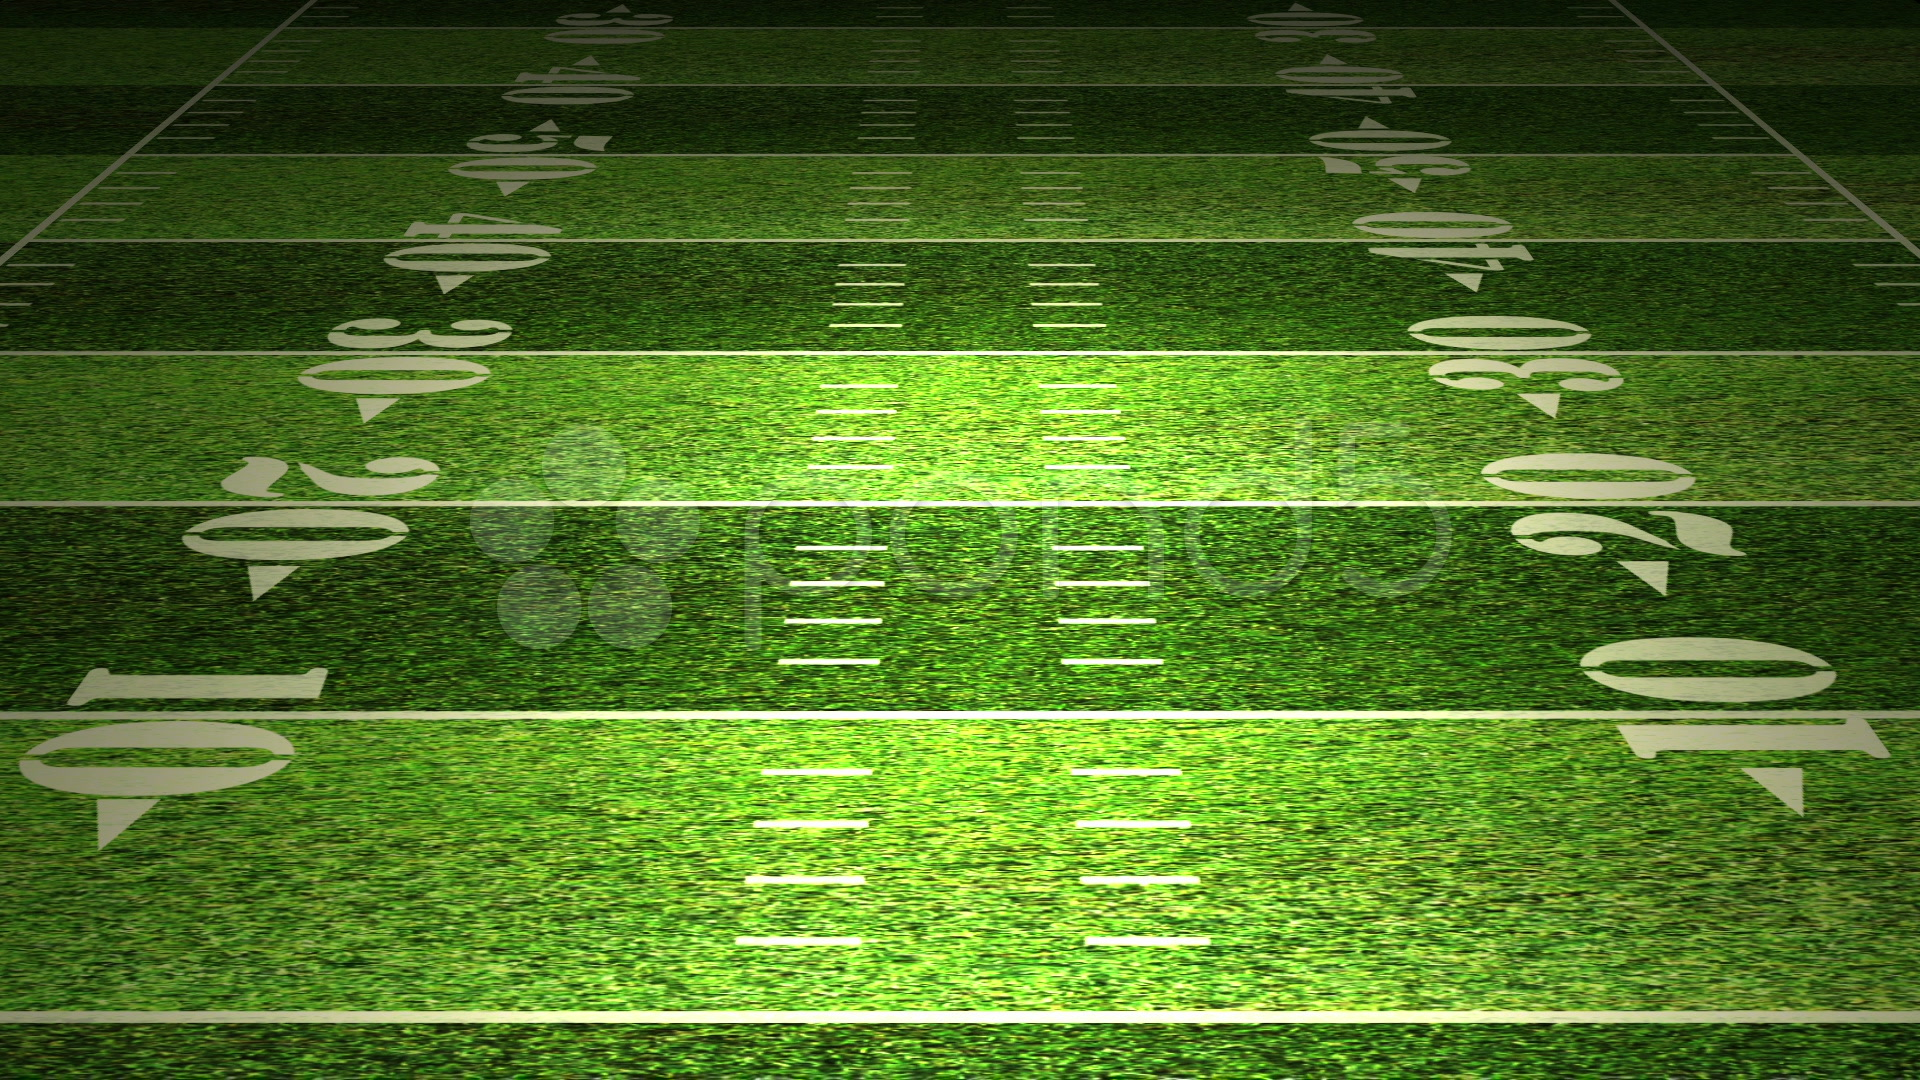 American Football Field Stock Video 001062519 HD Stock Footage 1920x1080